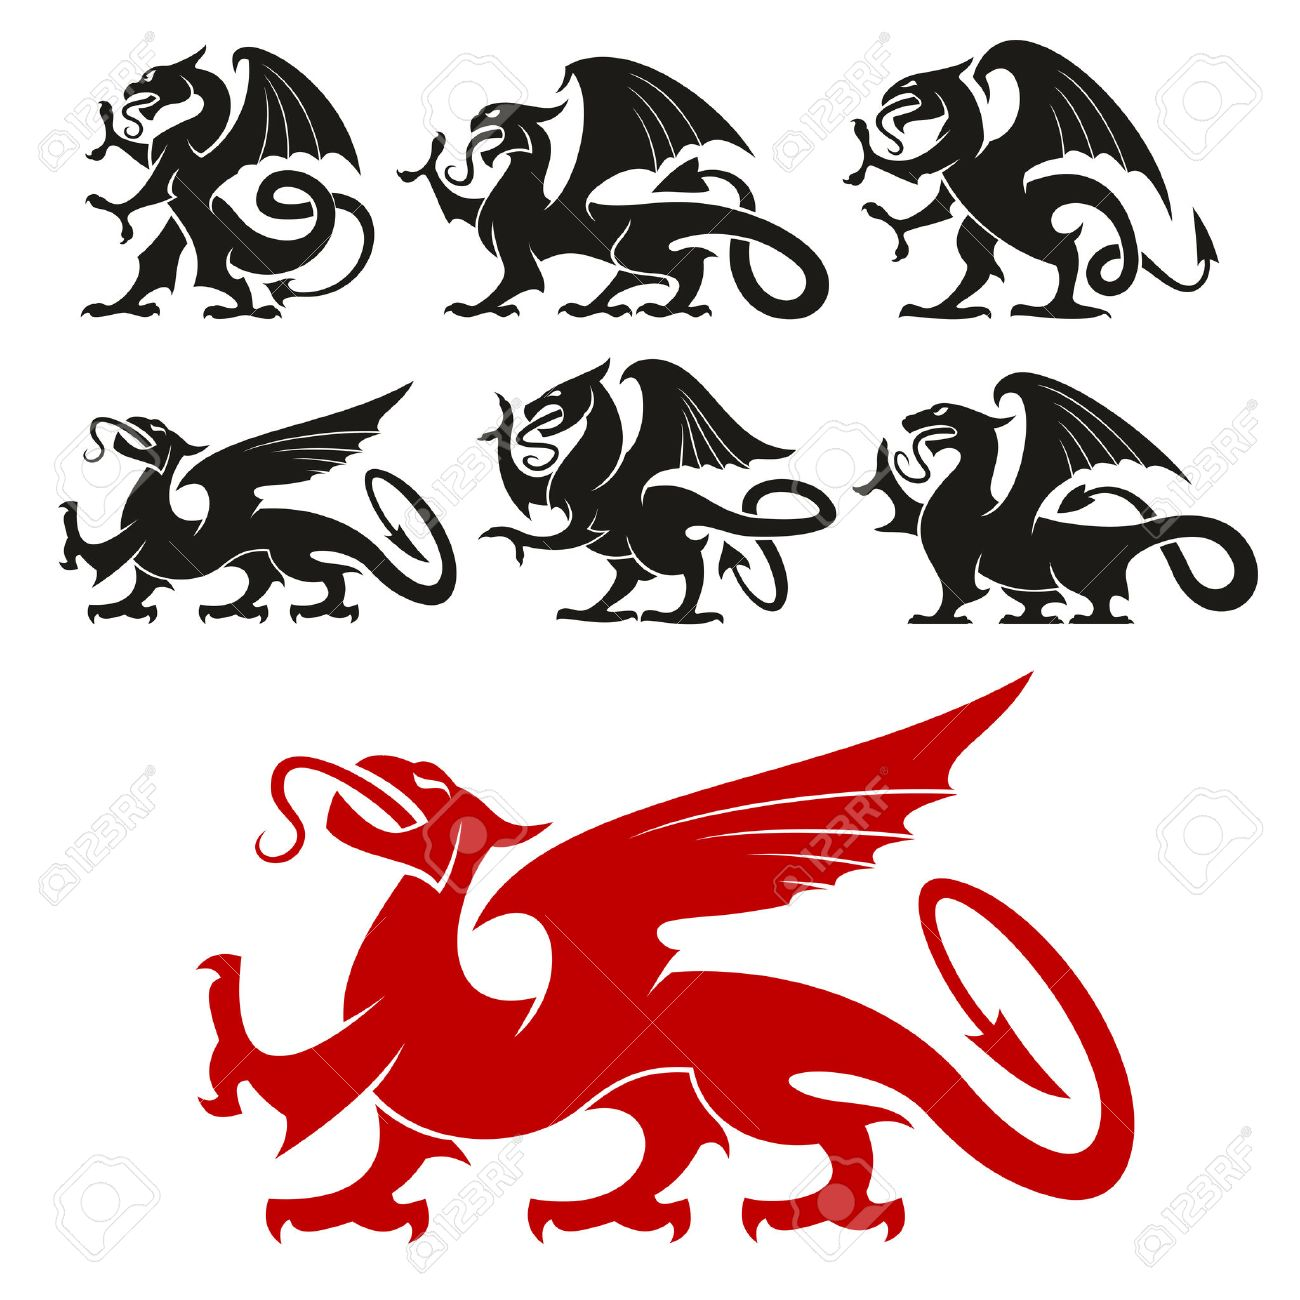 How to breed heraldic dragon - Heraldic Design Elements Heraldic Griffin Emblem Set And Mythical Dragon Silhouette Elements For Tattoo